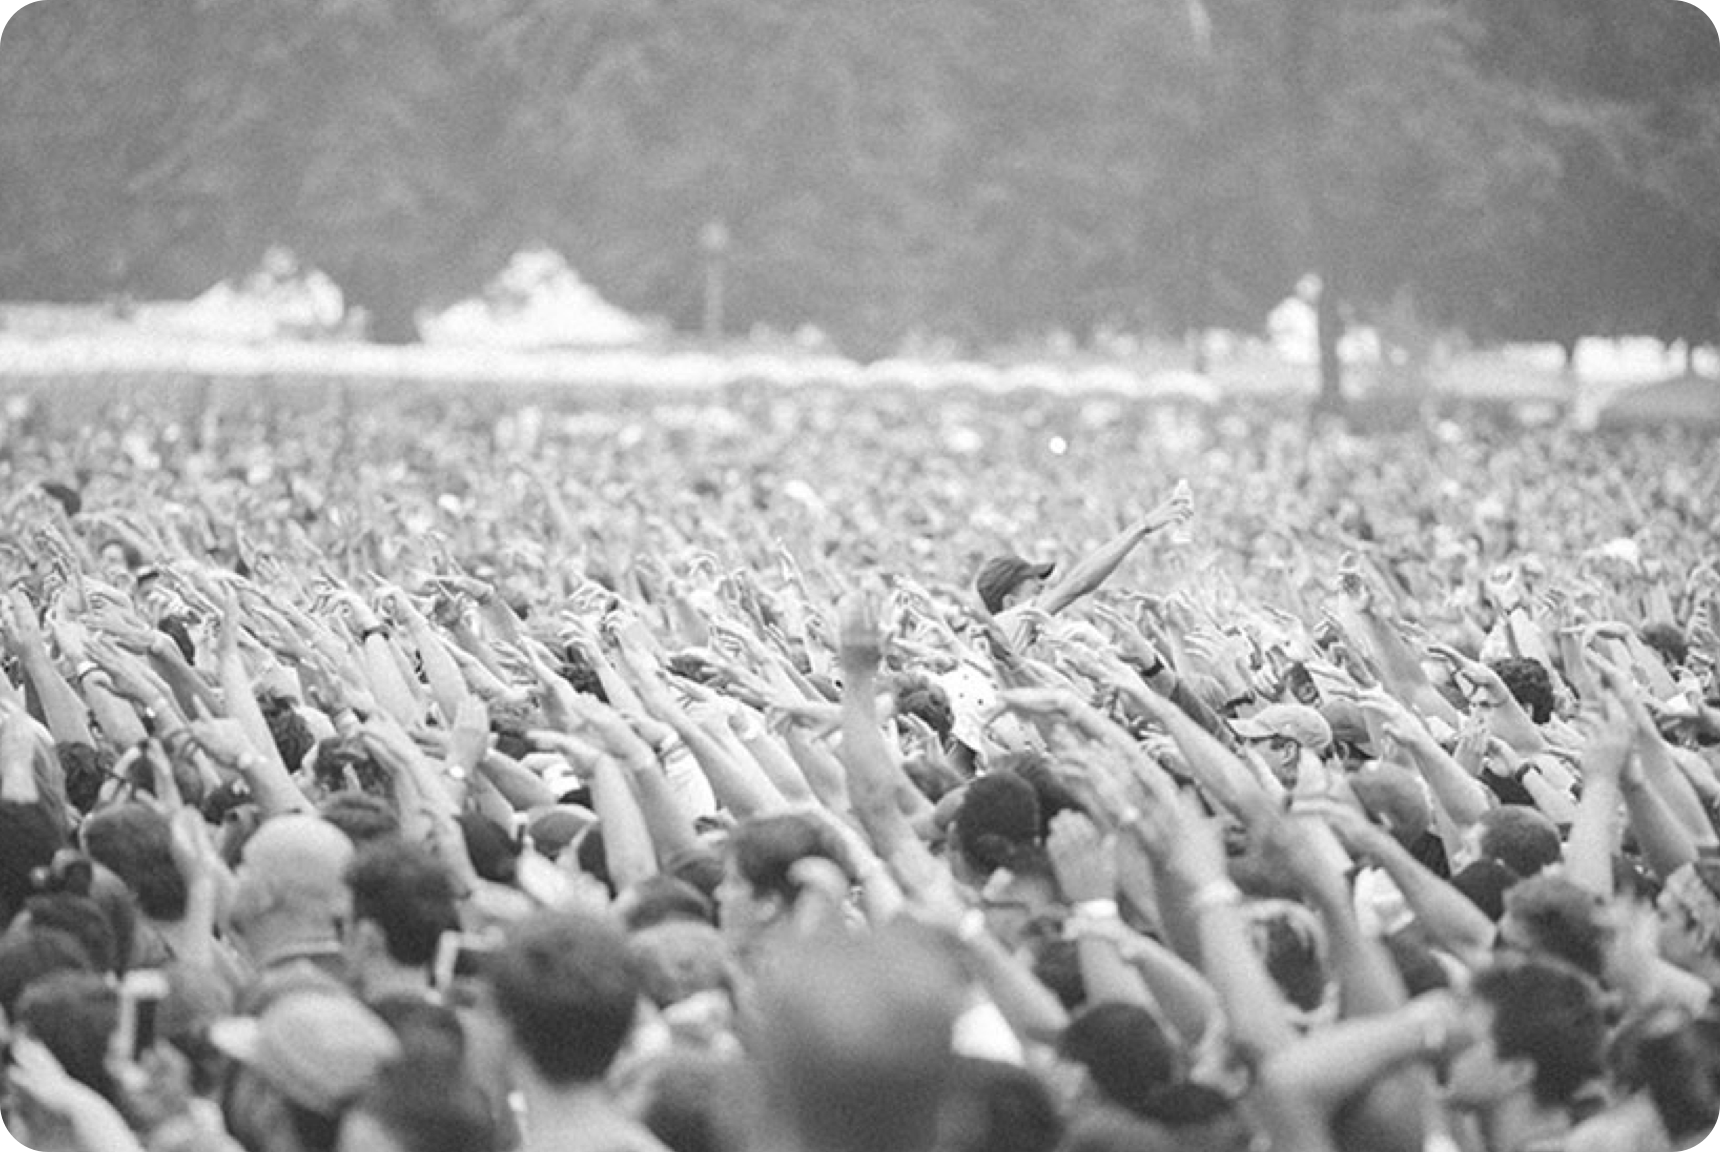 Large crowd with their hands in the air